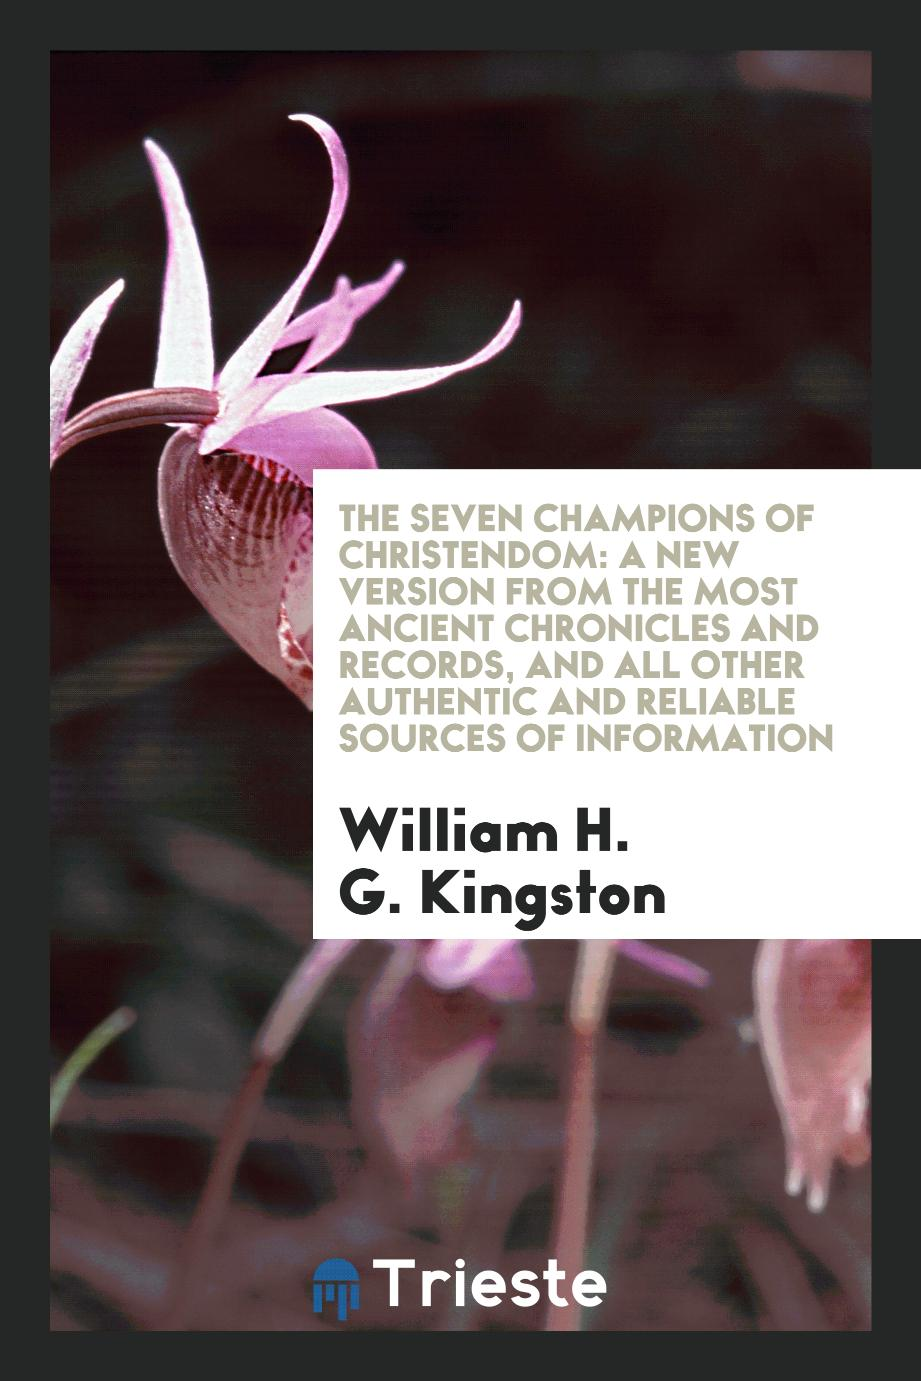 The Seven Champions of Christendom: A New Version from the Most Ancient Chronicles and Records, and All Other Authentic and Reliable Sources of Information